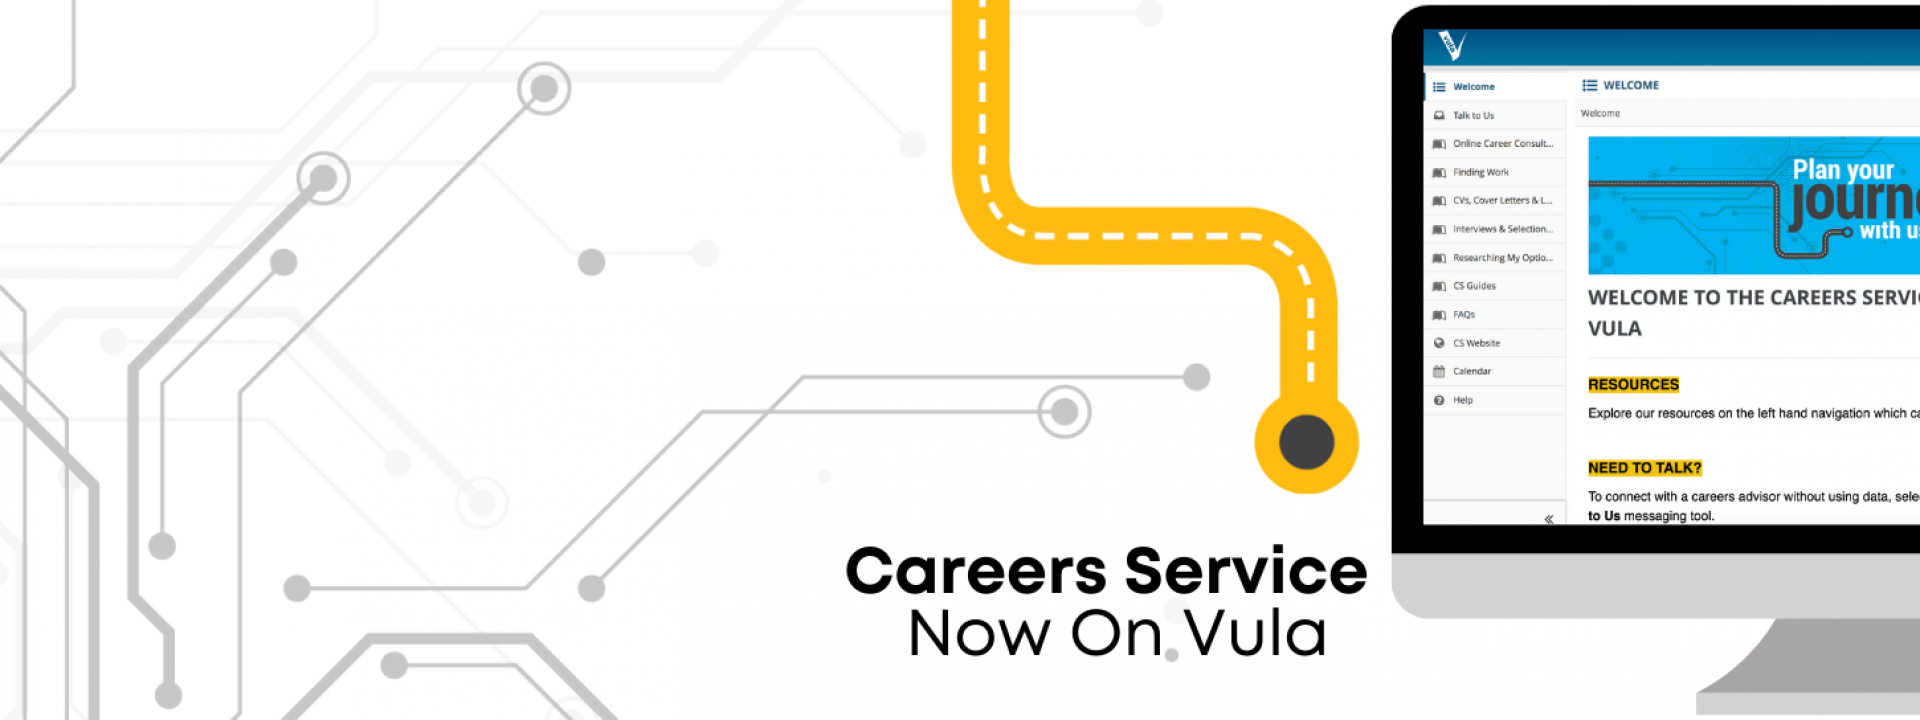 UCT Careers Service now on Vula